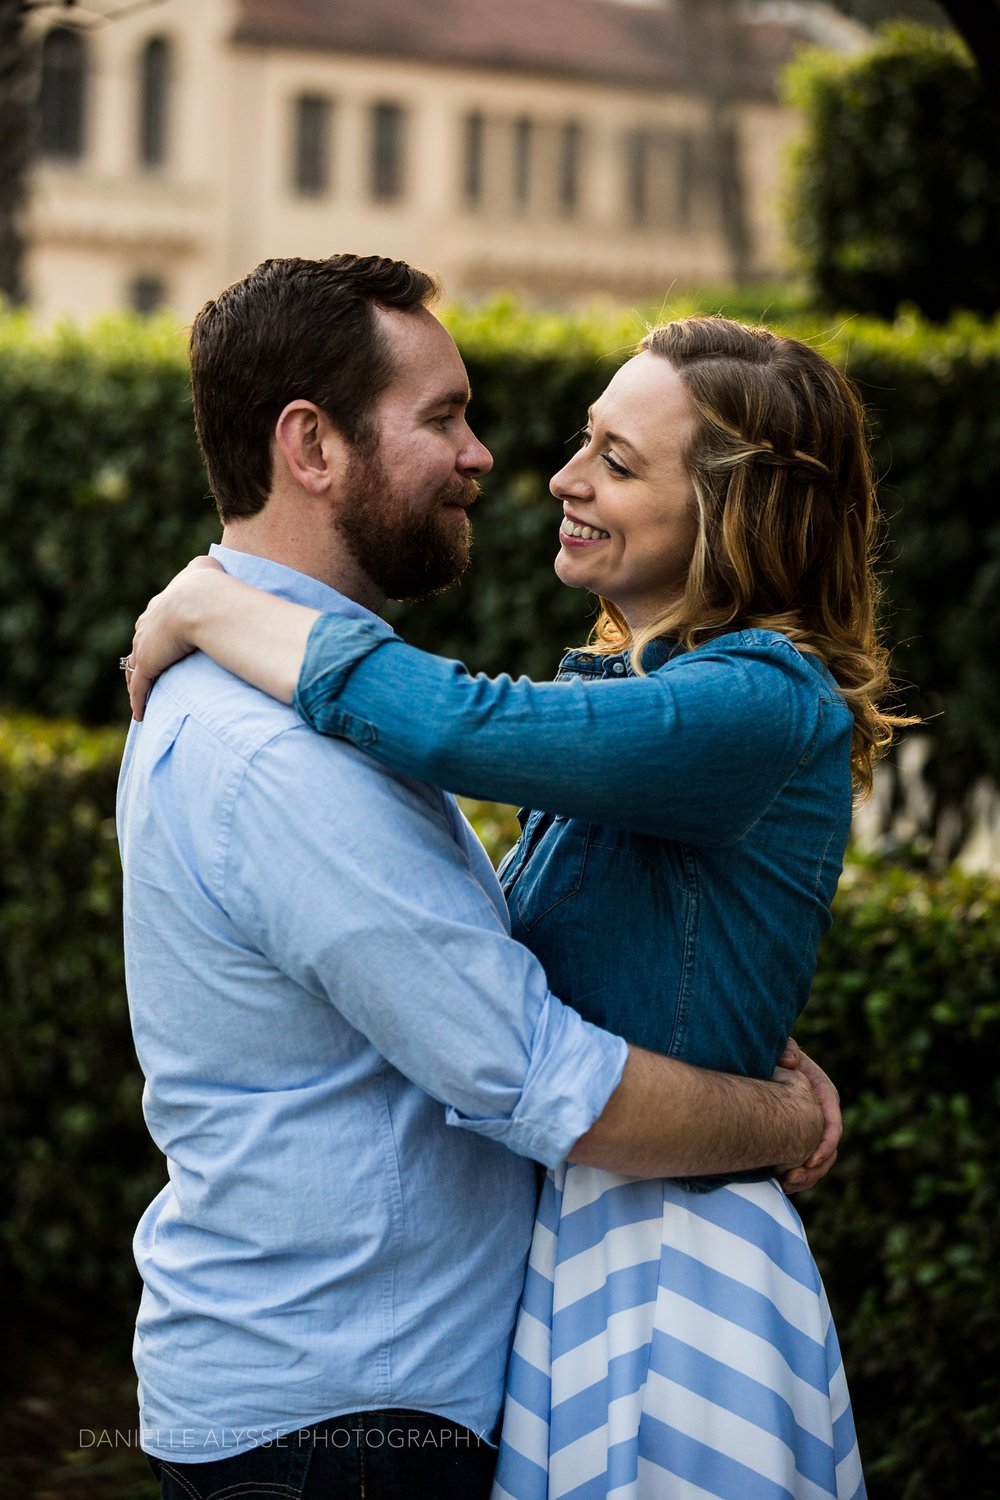 180204_engagement_kristi_state_capitol_downtown_california_danielle_alysse_photography_sacramento_photographer_38_WEB.jpg